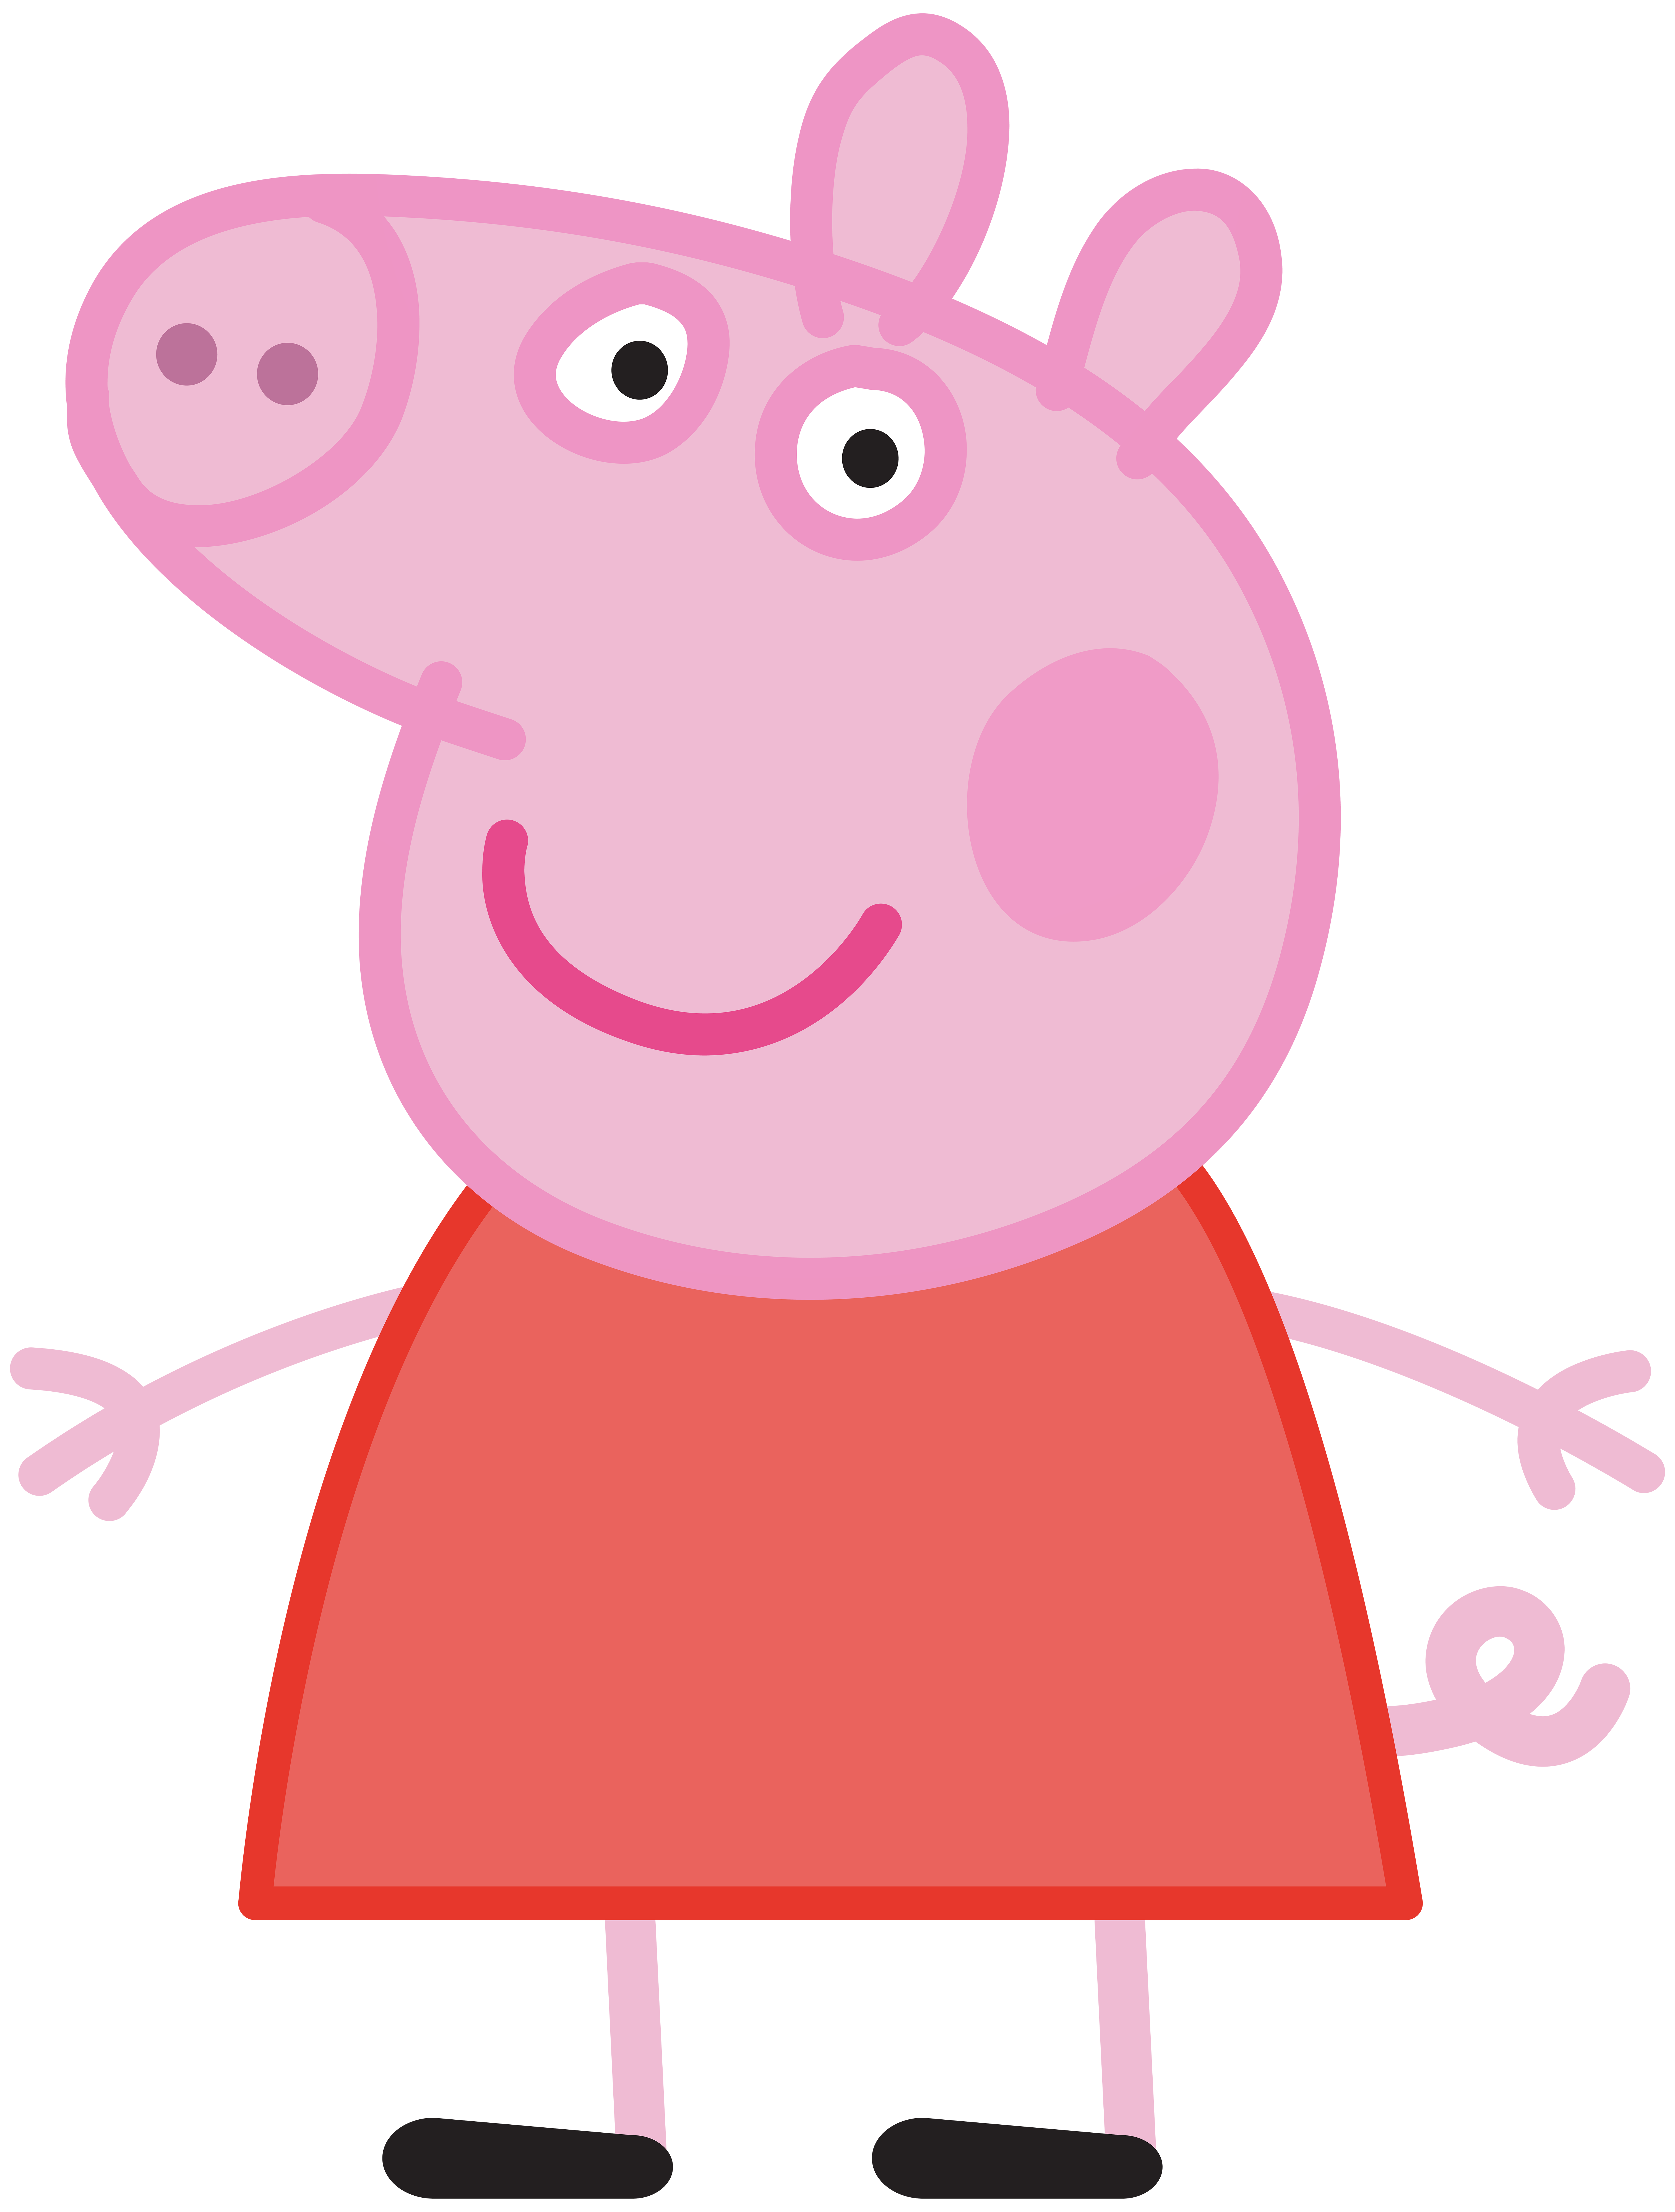 Pigs clipart transparent background. Peppa pig png image